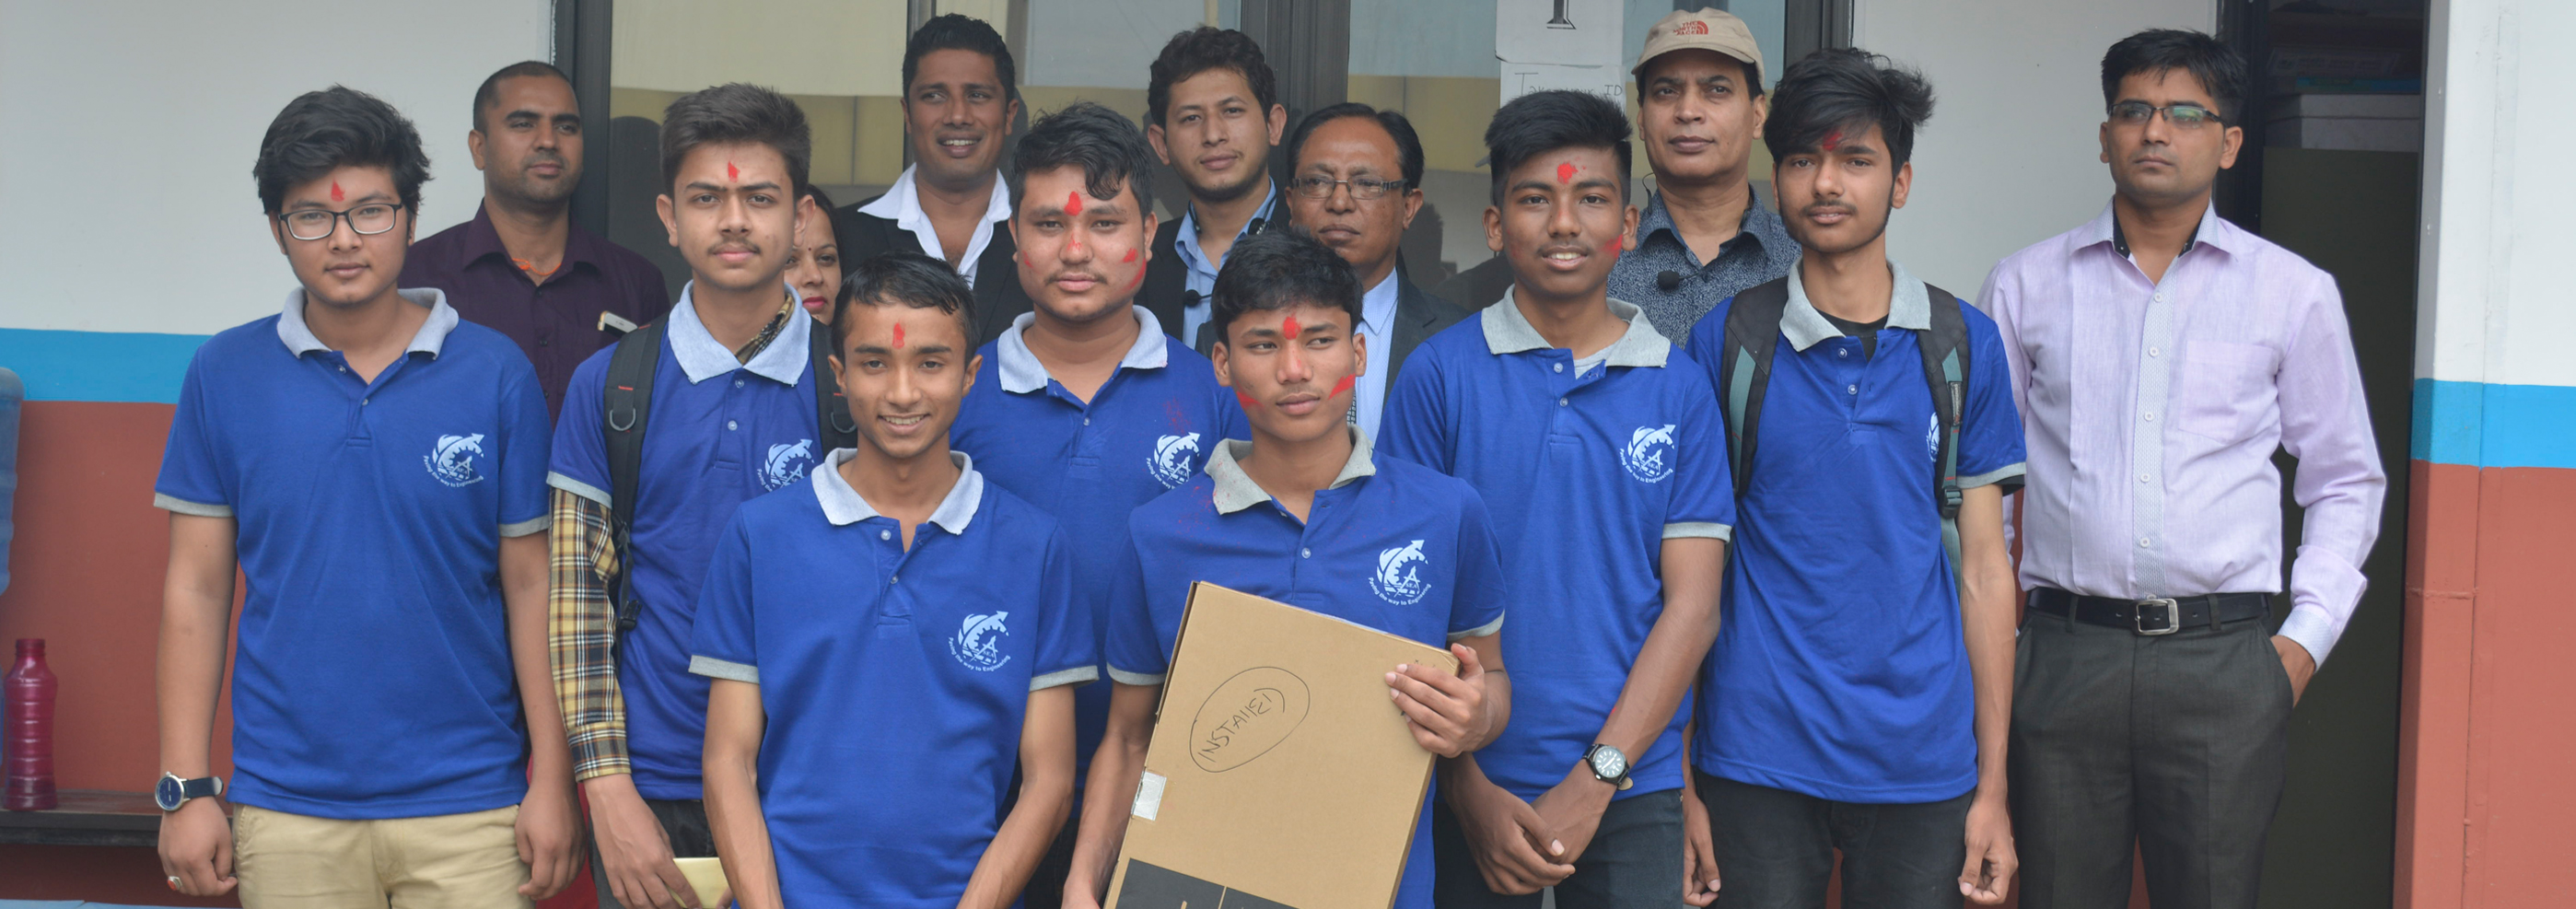 Scholarship Test Toppers: Prize Distribution Ceremony. Mr. Nishant Singh receiving a laptop